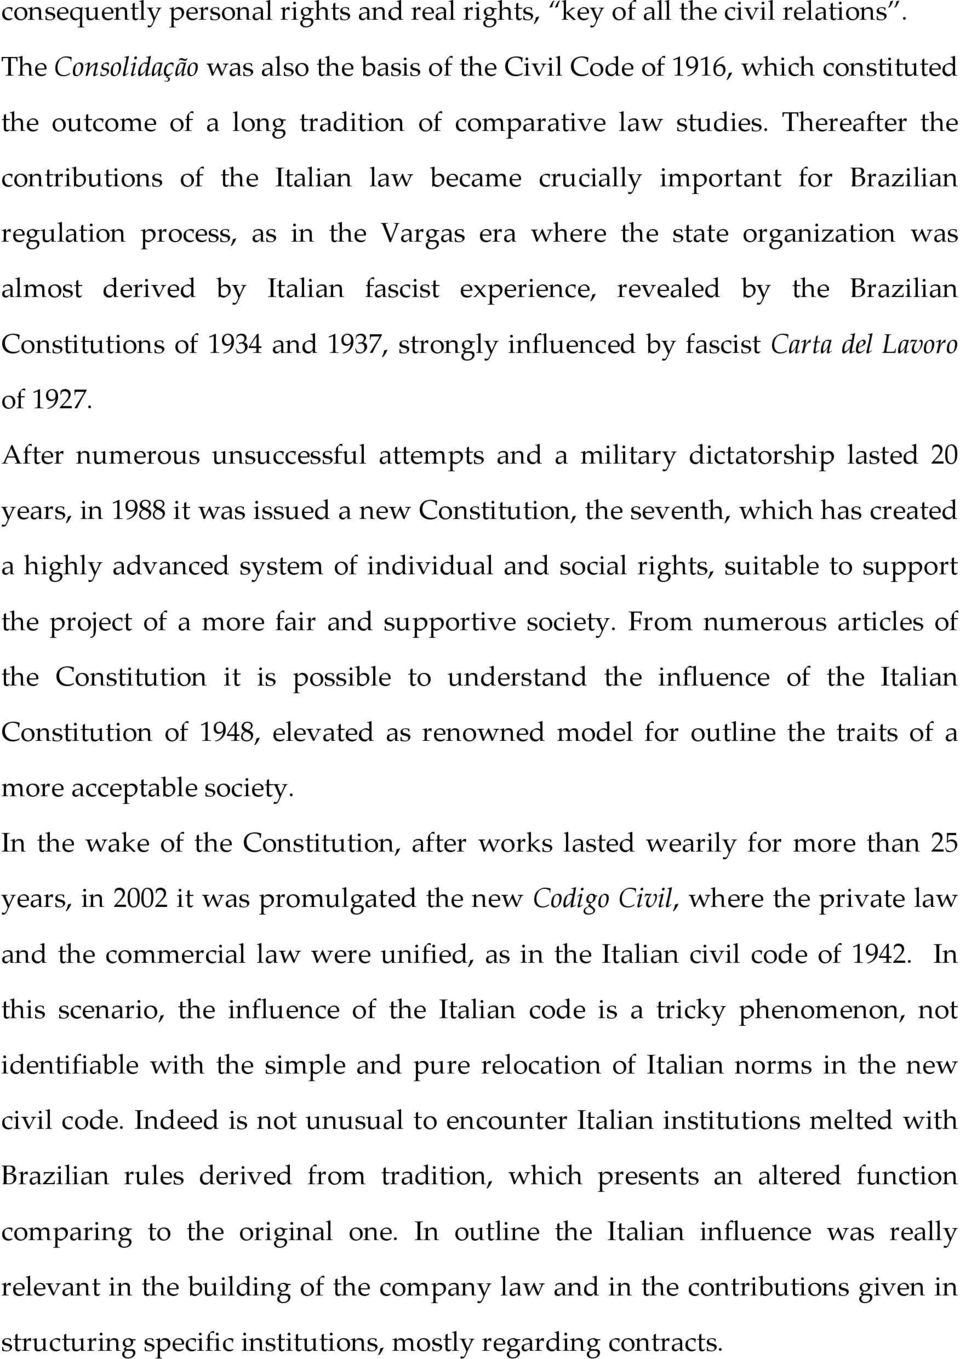 Thereafter the contributions of the Italian law became crucially important for Brazilian regulation process, as in the Vargas era where the state organization was almost derived by Italian fascist